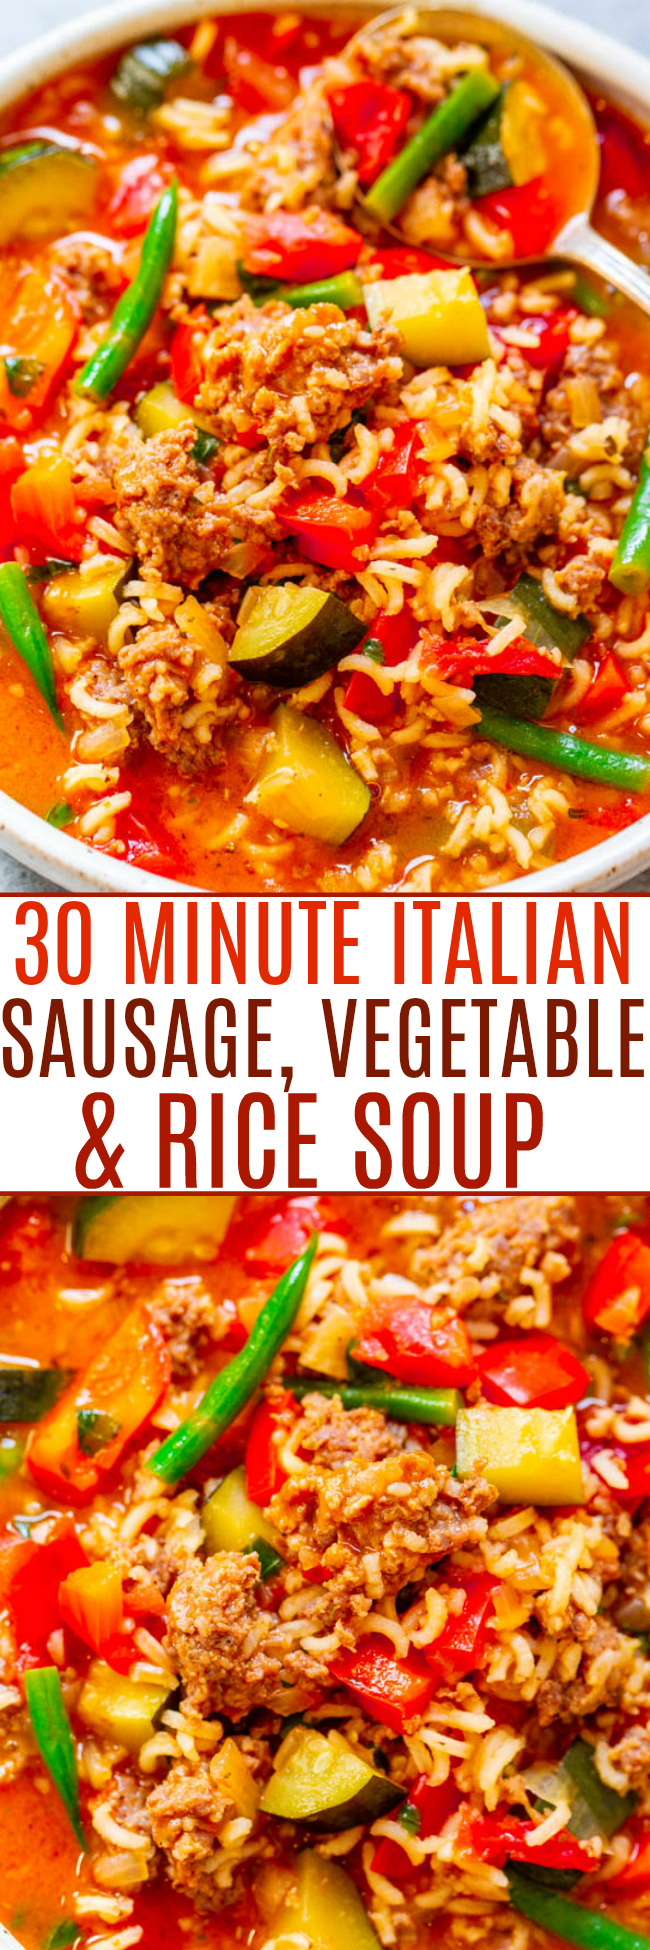 30-Minute Italian Sausage Soup — EASY, hearty soup that's full of flavor from the sausage, rice, and vegetables!! Comfort food the whole family will LOVE and it's healthier from the vegetables! It keeps you warm and cozy on cold winter nights!!